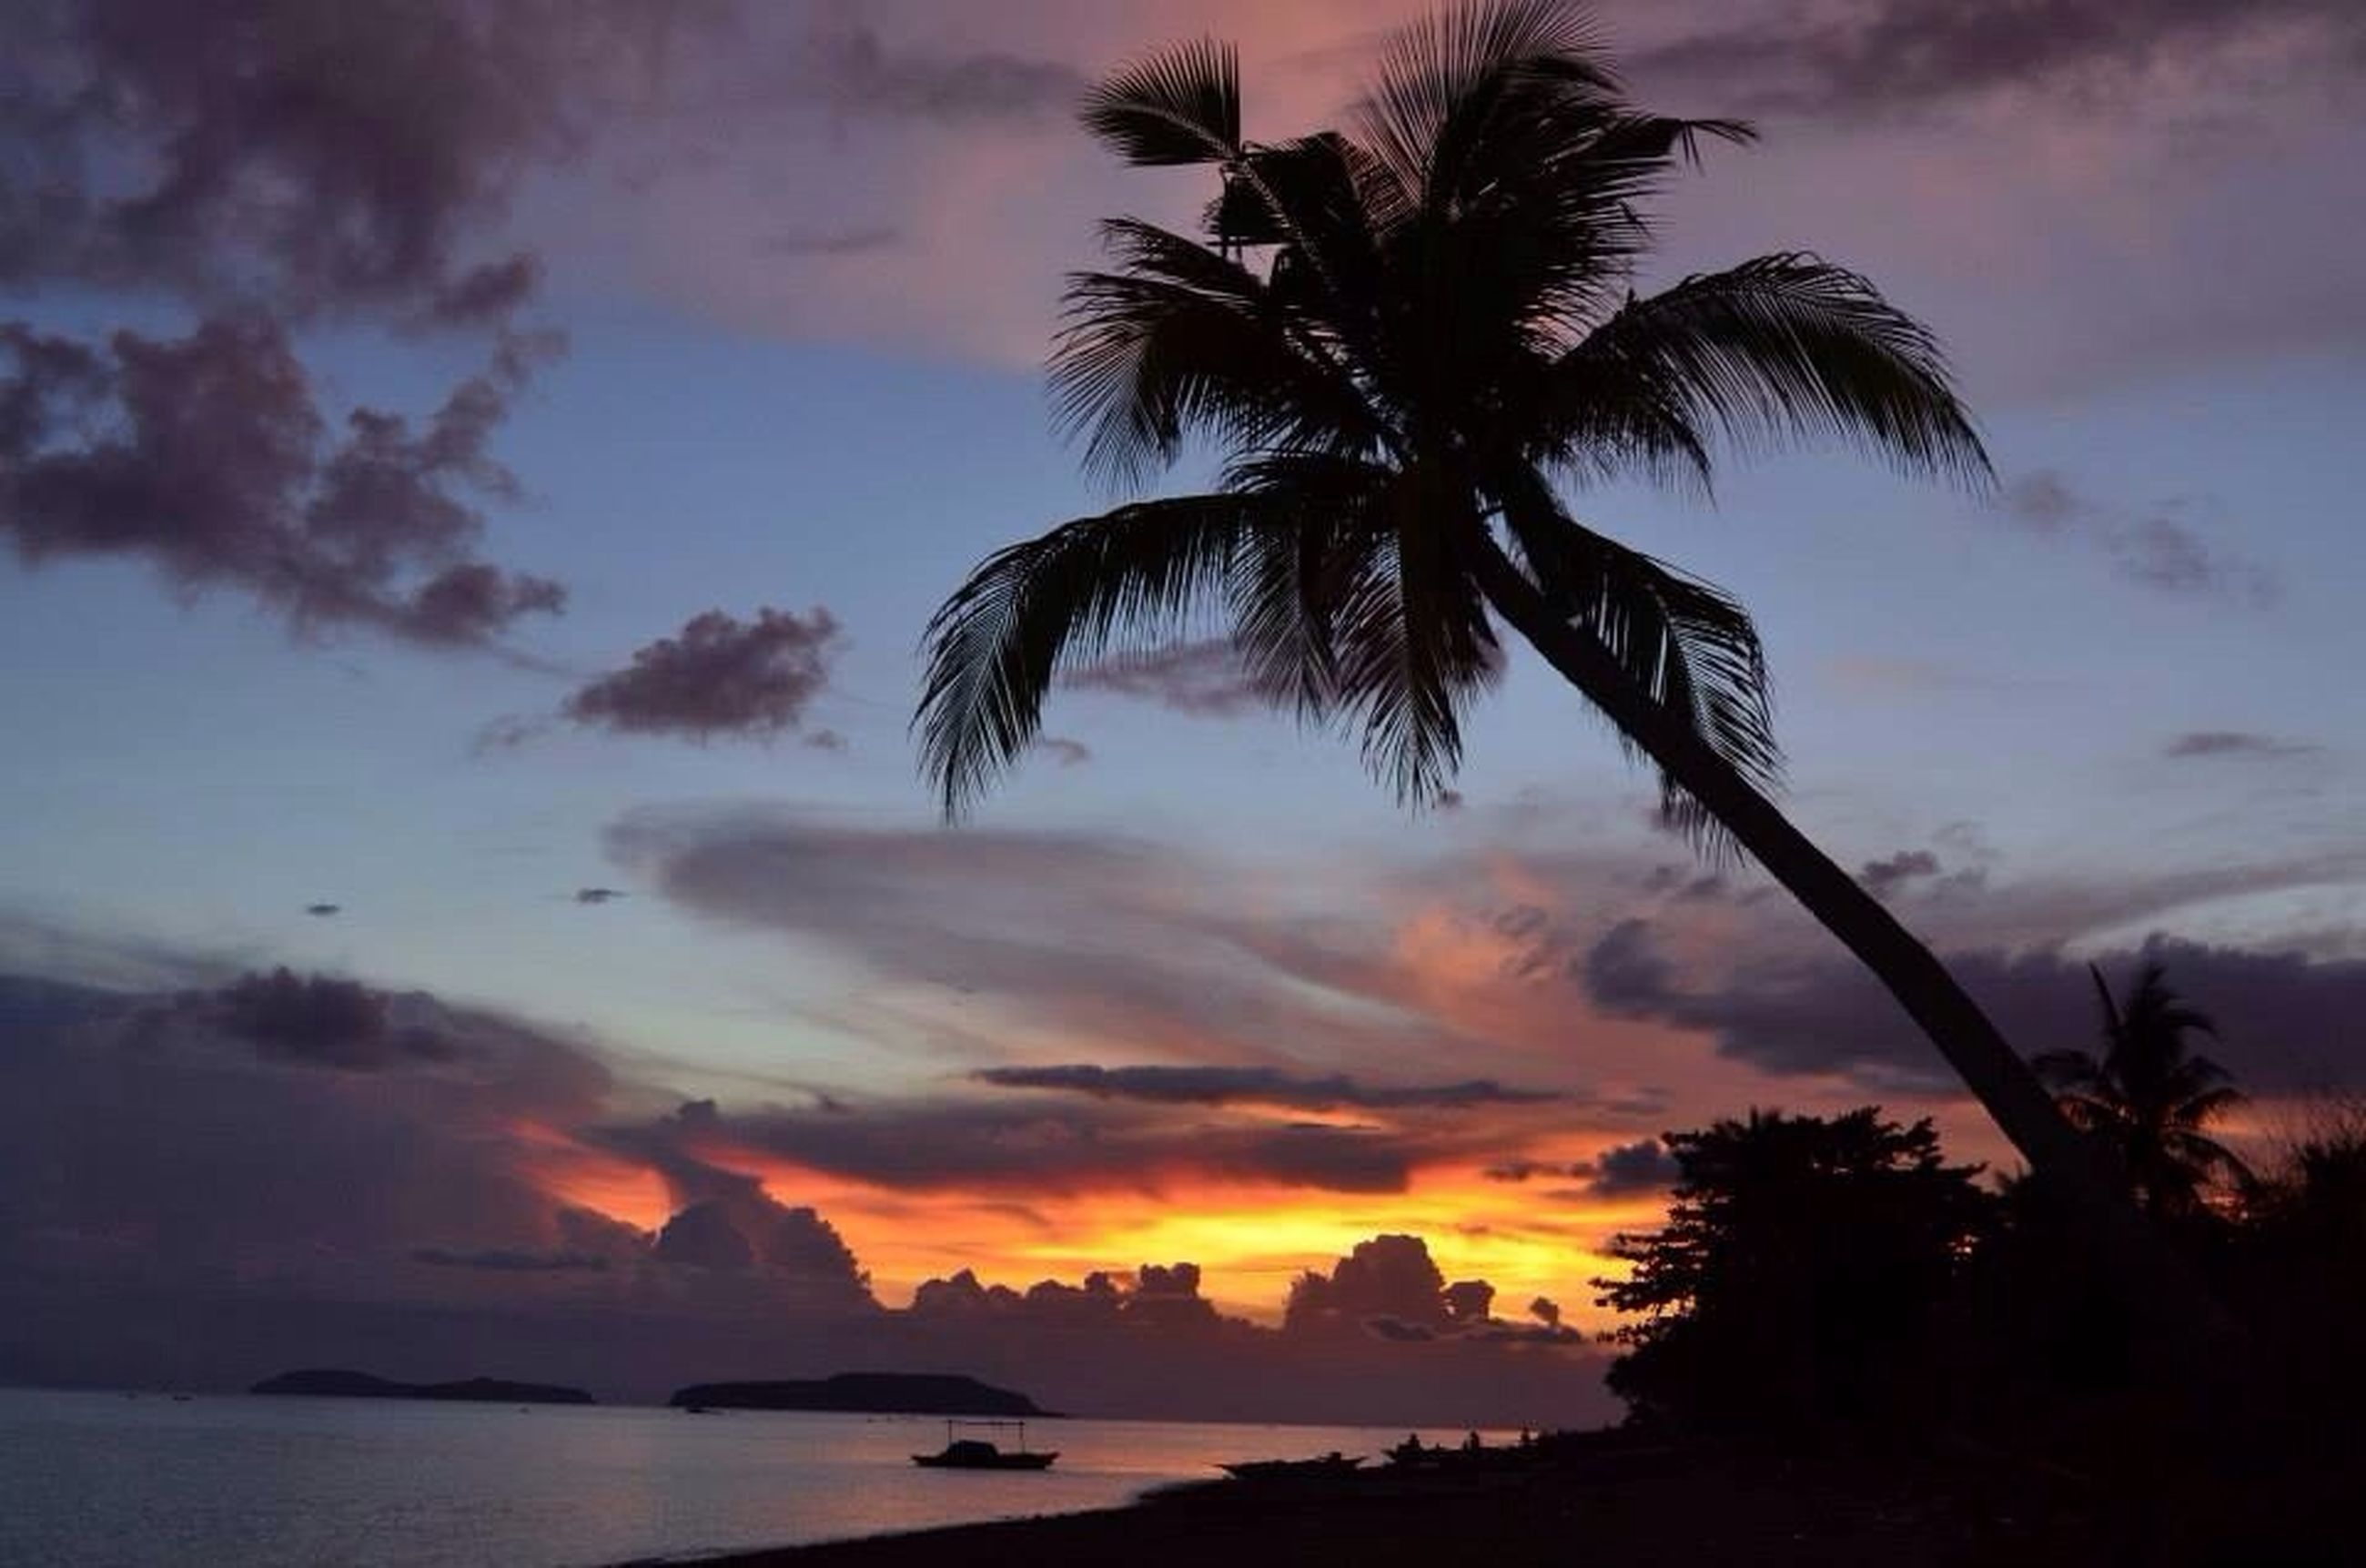 palm tree, sky, sunset, silhouette, scenics, tree, tranquil scene, tranquility, beauty in nature, sea, cloud - sky, water, nature, horizon over water, beach, idyllic, cloud, cloudy, dramatic sky, dusk